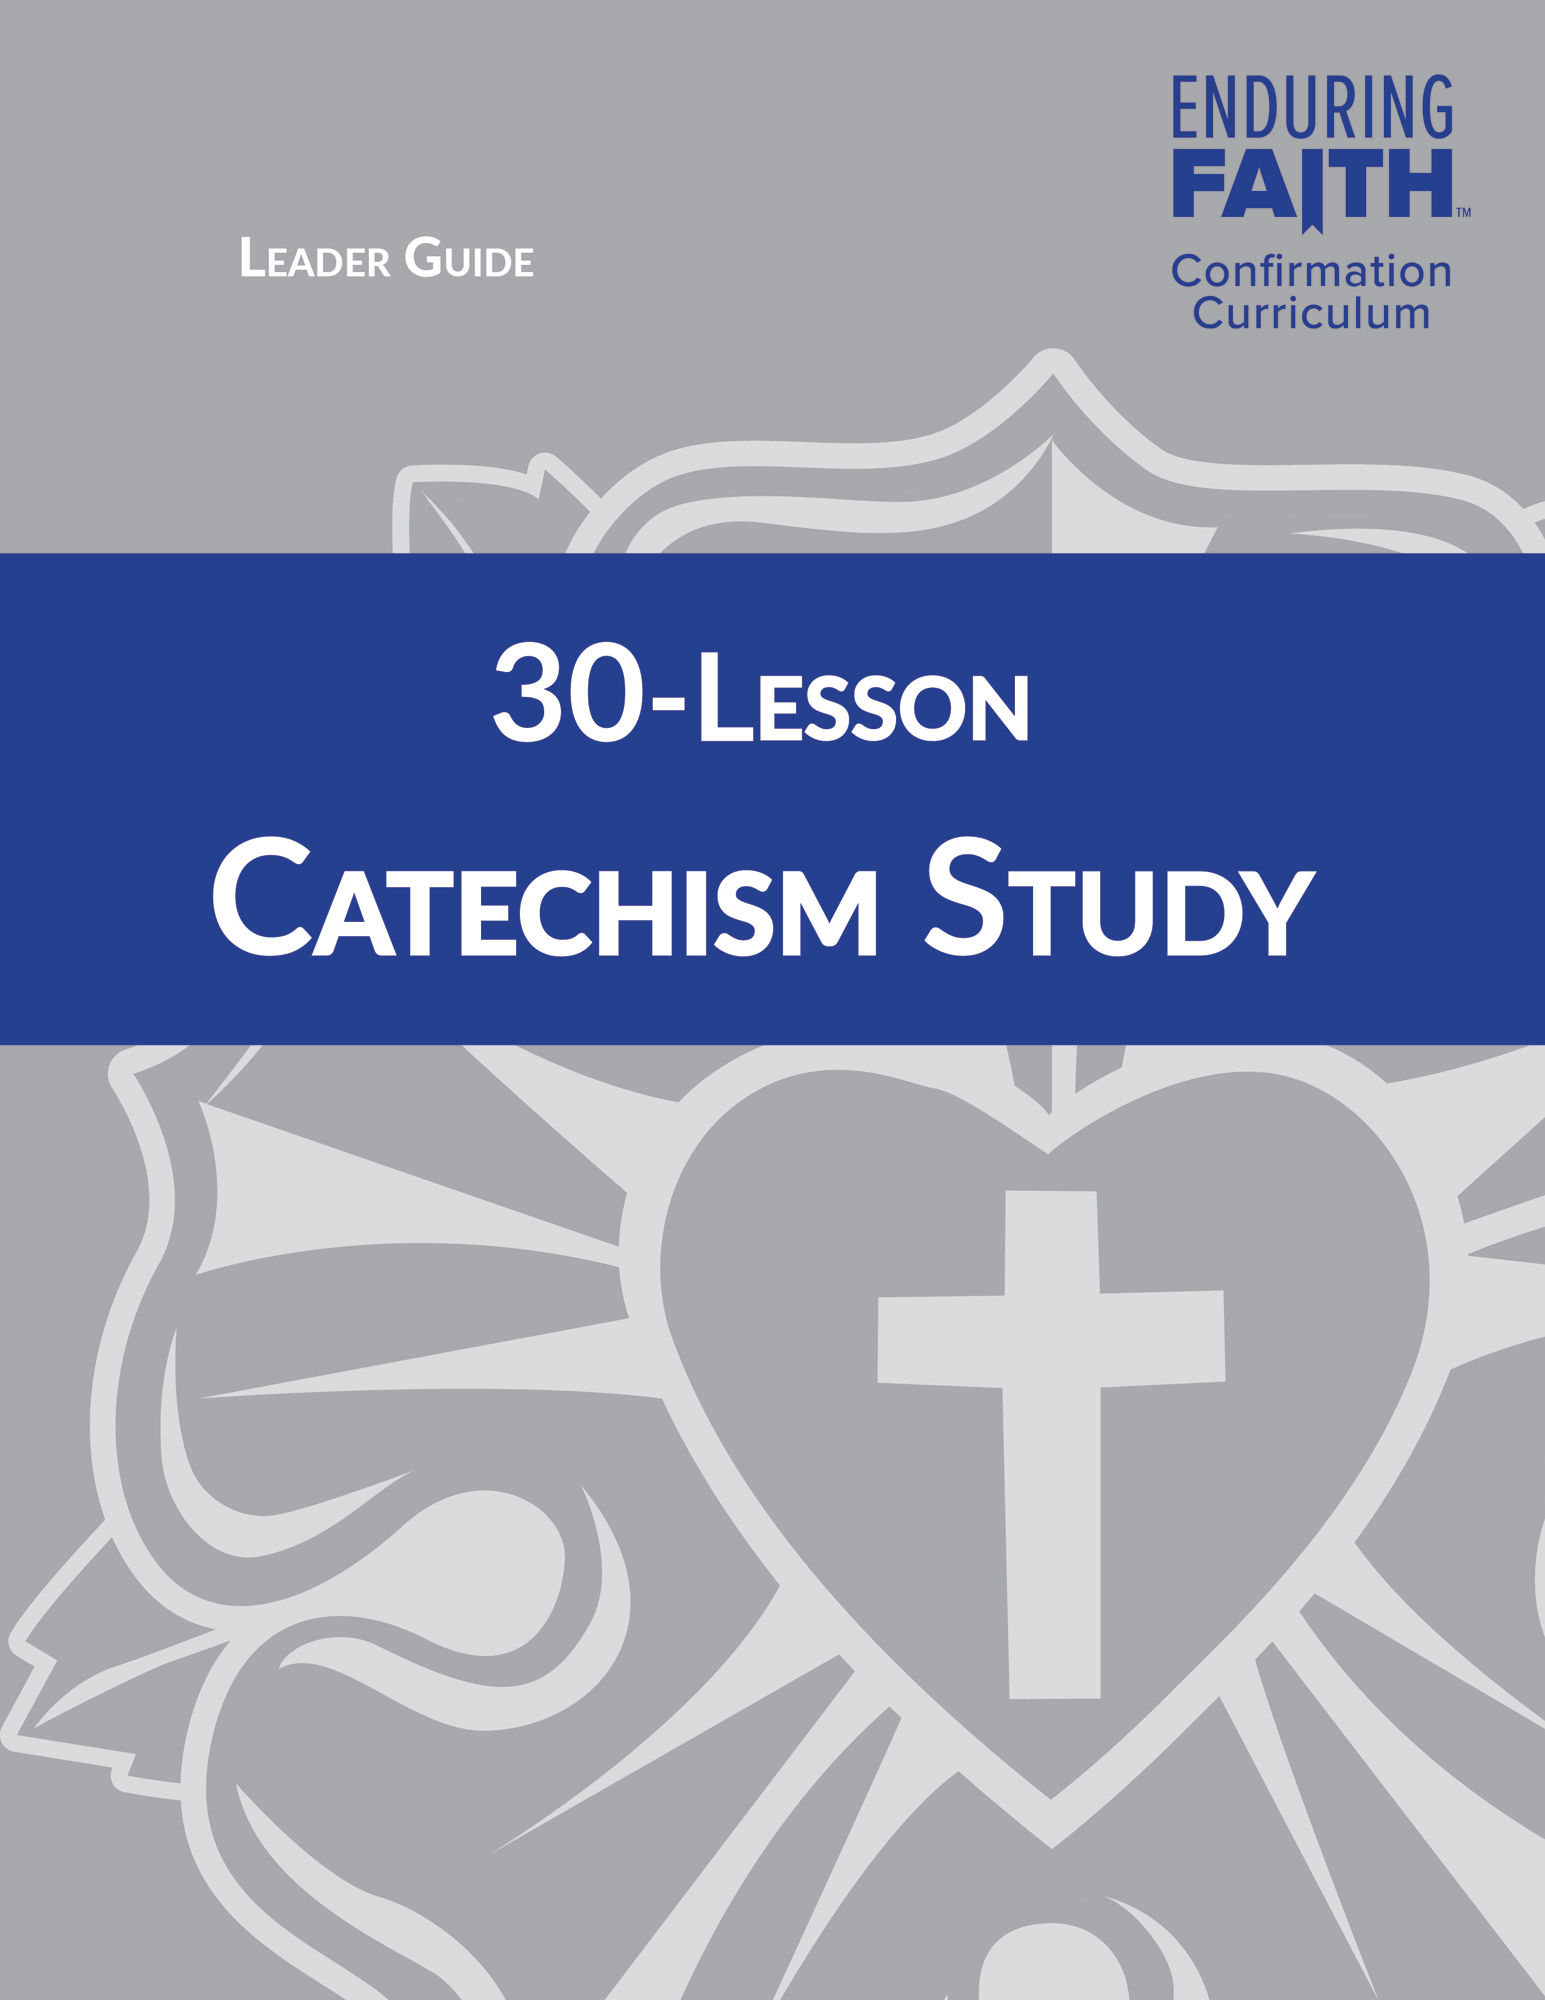 Study Guides for Catechism - baylor.edu